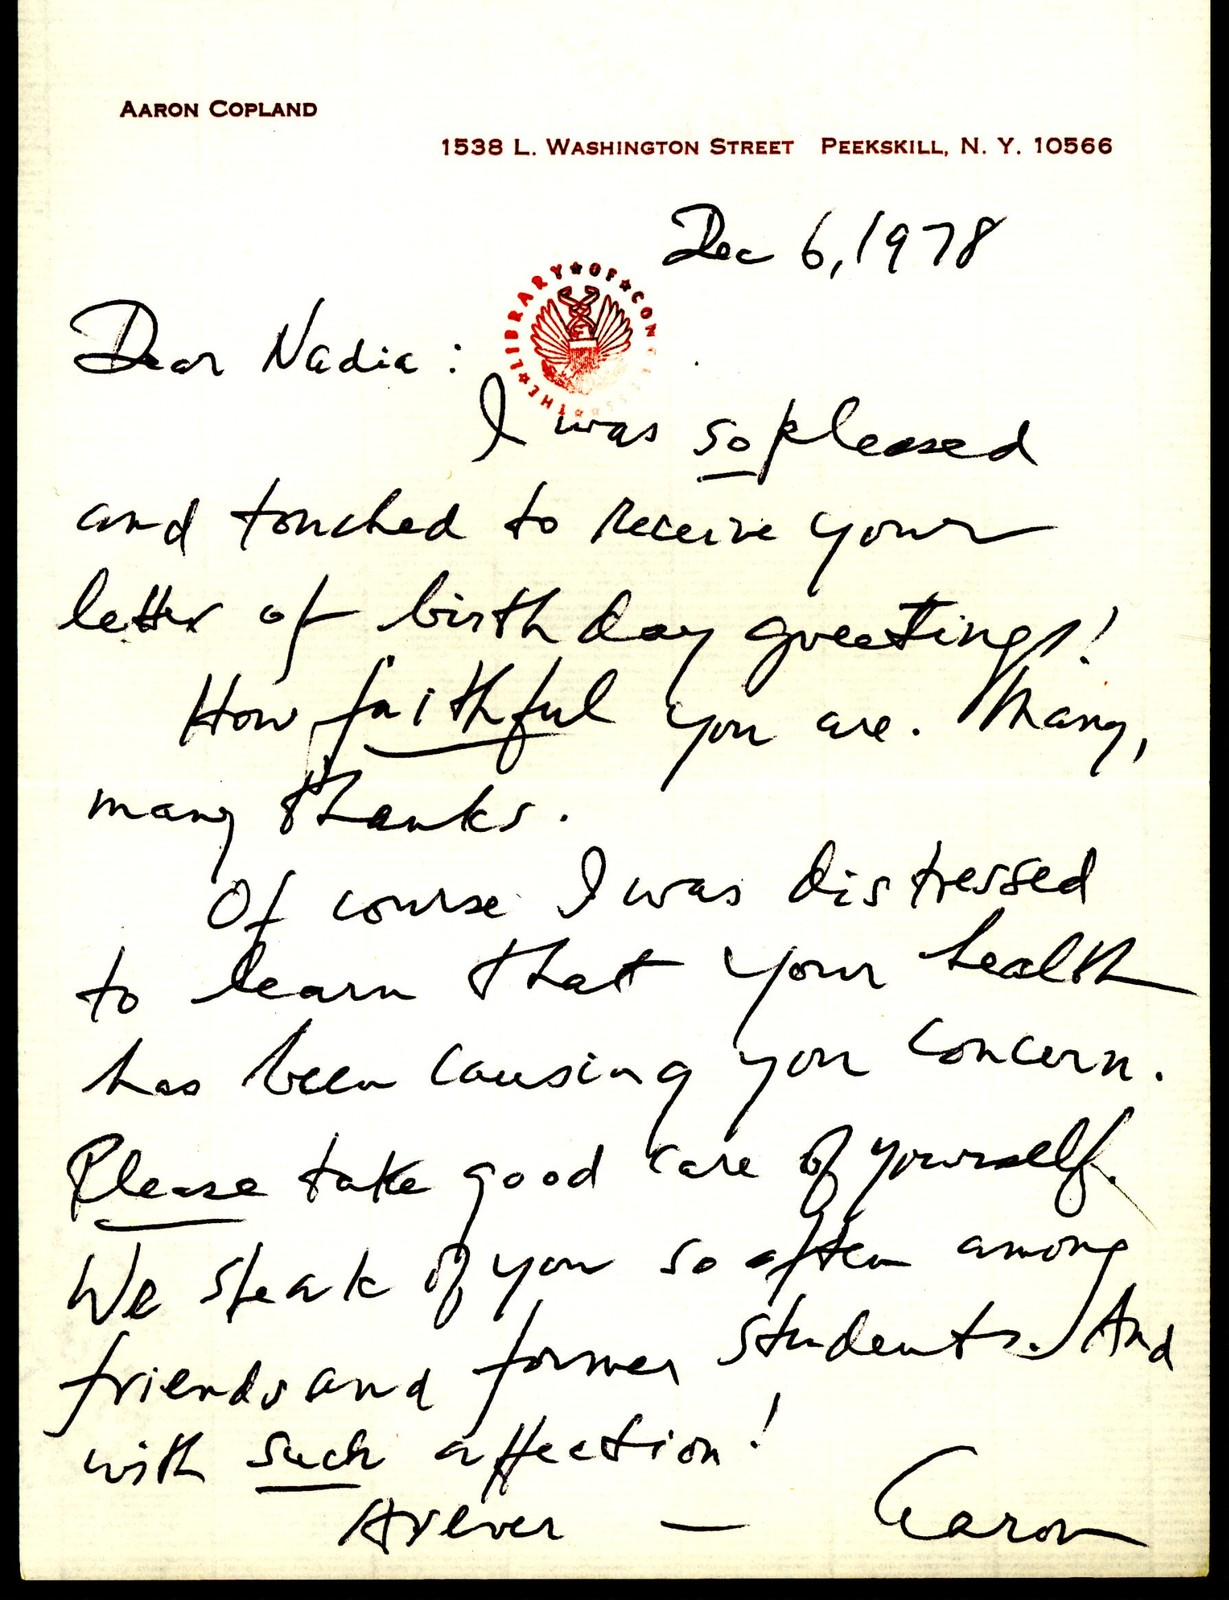 Letter from Aaron Copland to Nadia Boulanger, December 6, 1978.